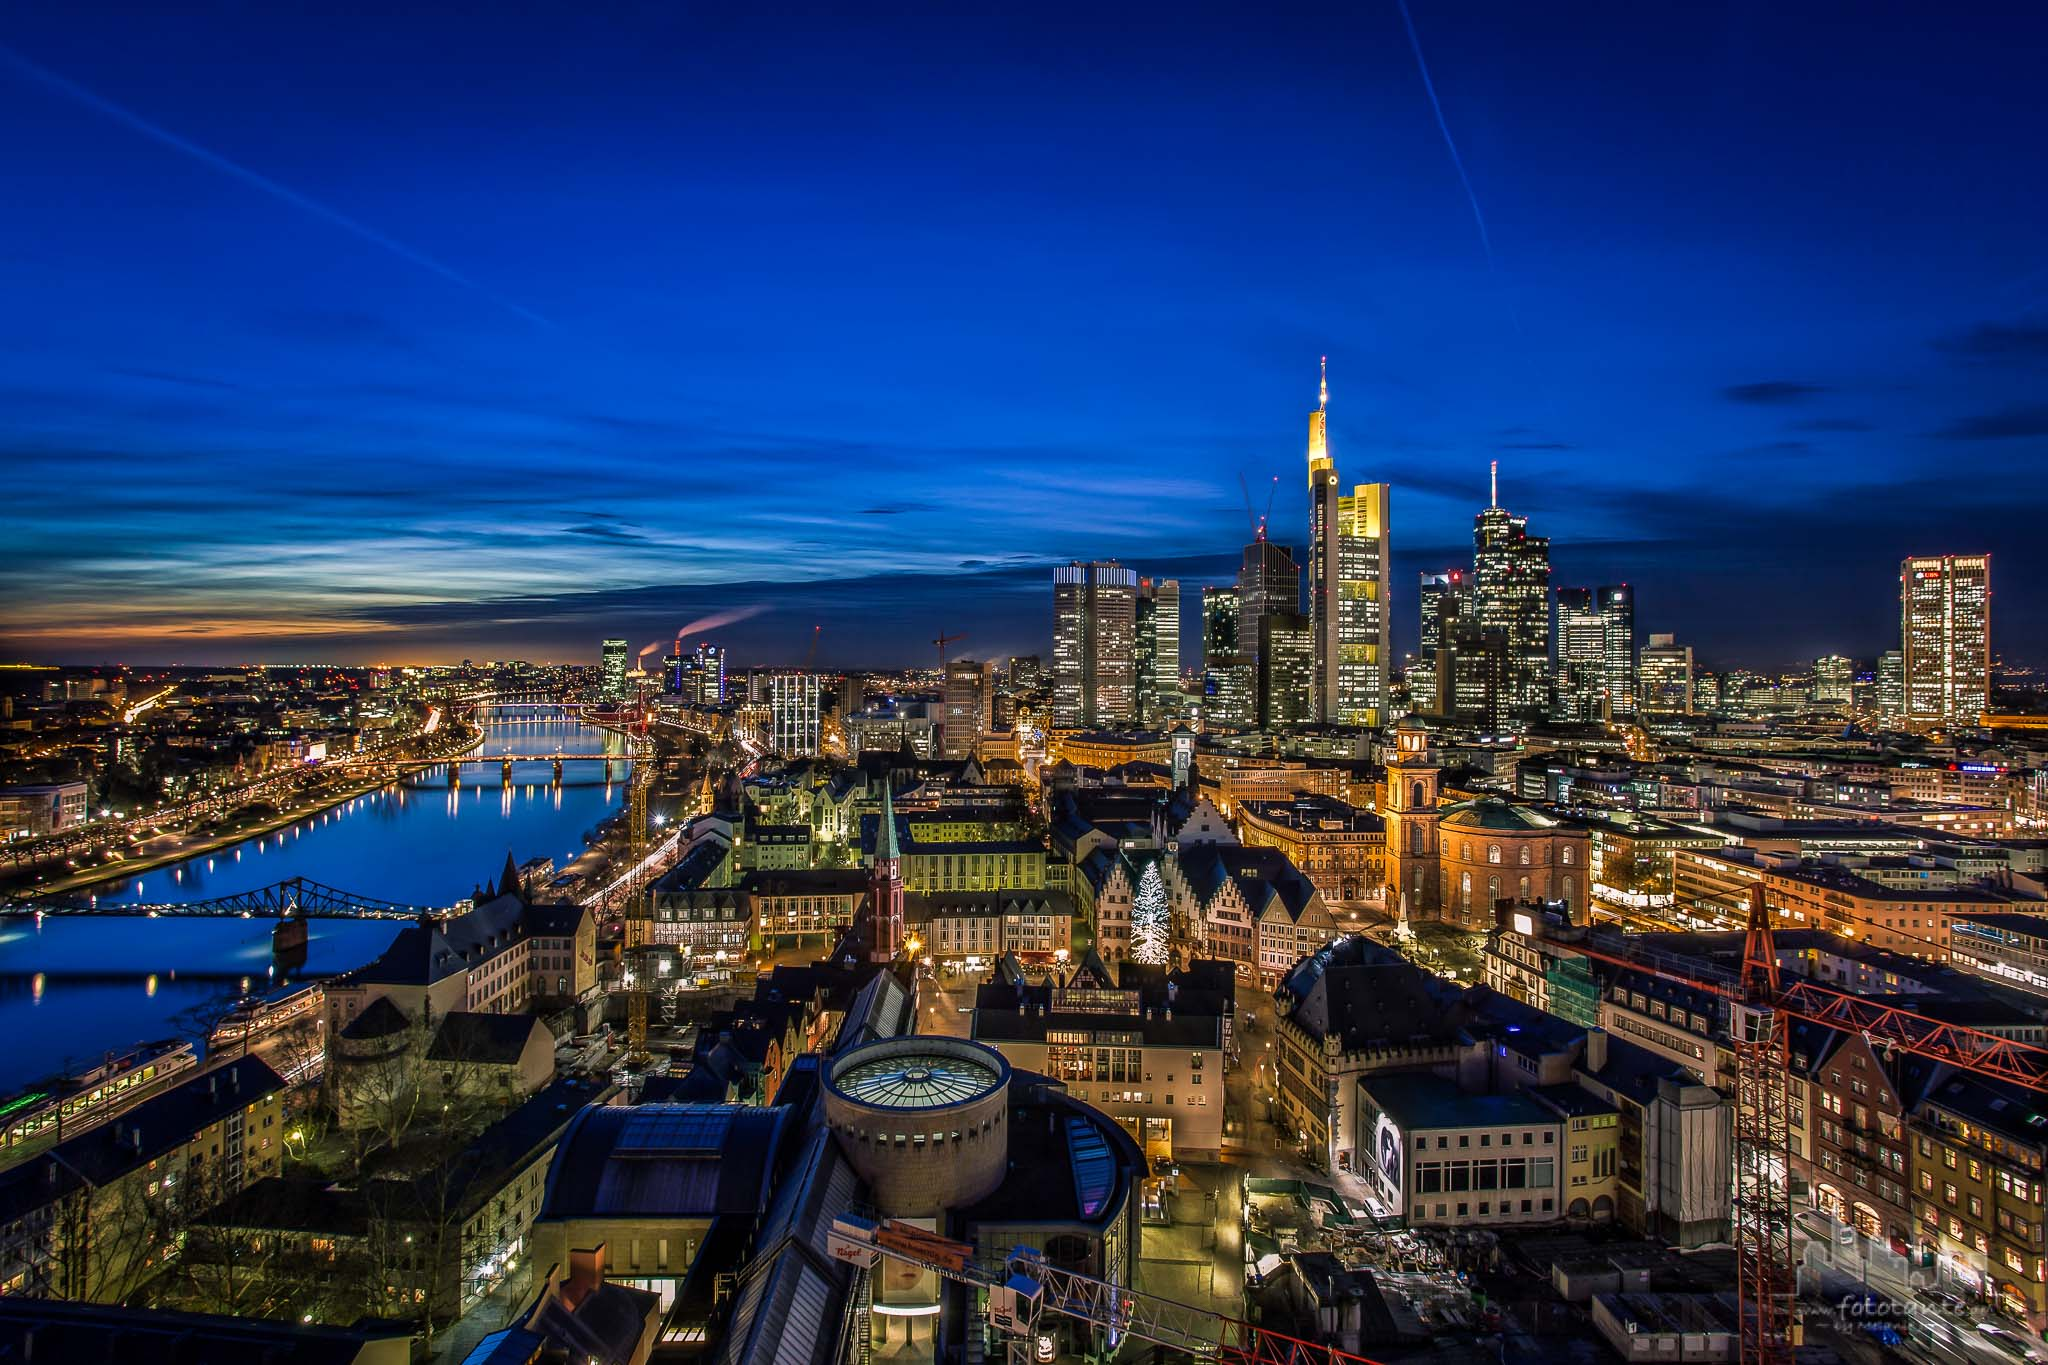 View from Frankfurt Cathedral 'St. Bartholomew', Germany